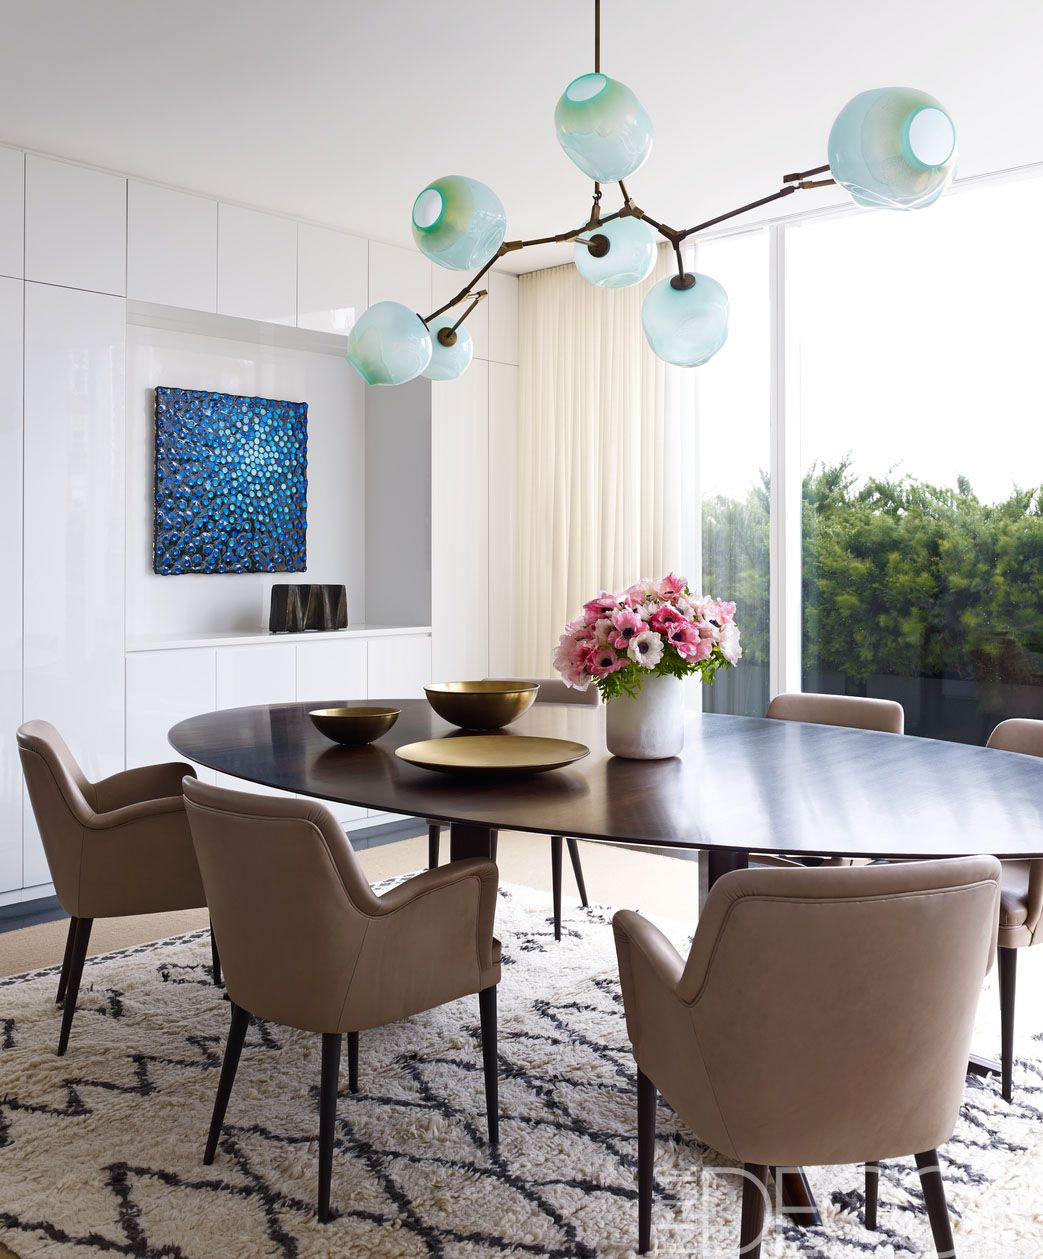 Contemporary Dining Room Decorating Ideas 25 Modern Dining Room Decorating Ideas  Contemporary Dining Room